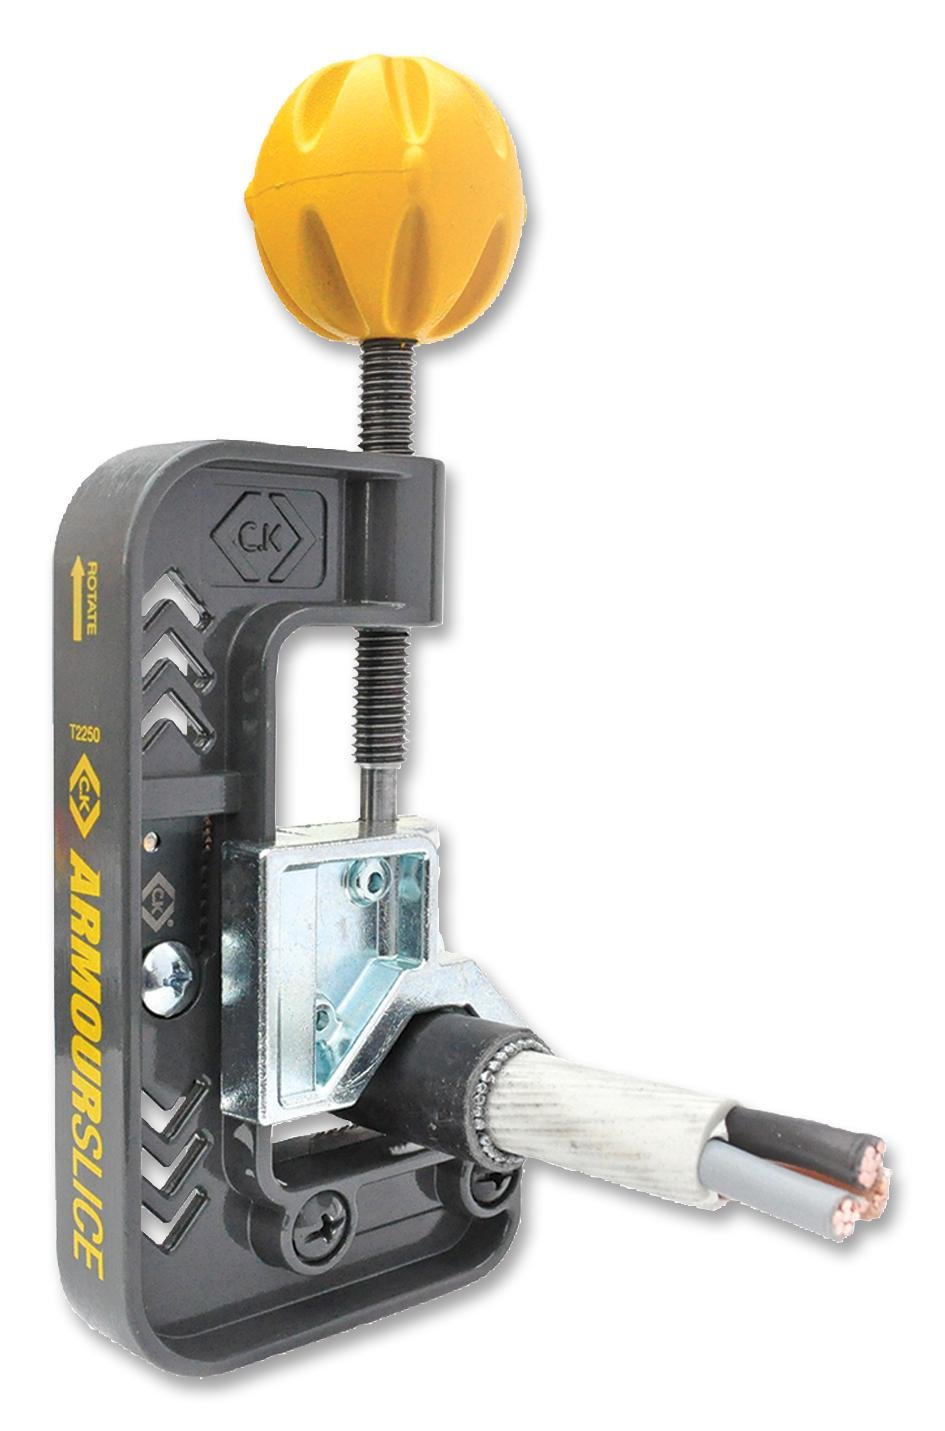 SWA T2250 By CK TOOLS ARMOURED CABLE CUTTER ARMOURSLICE